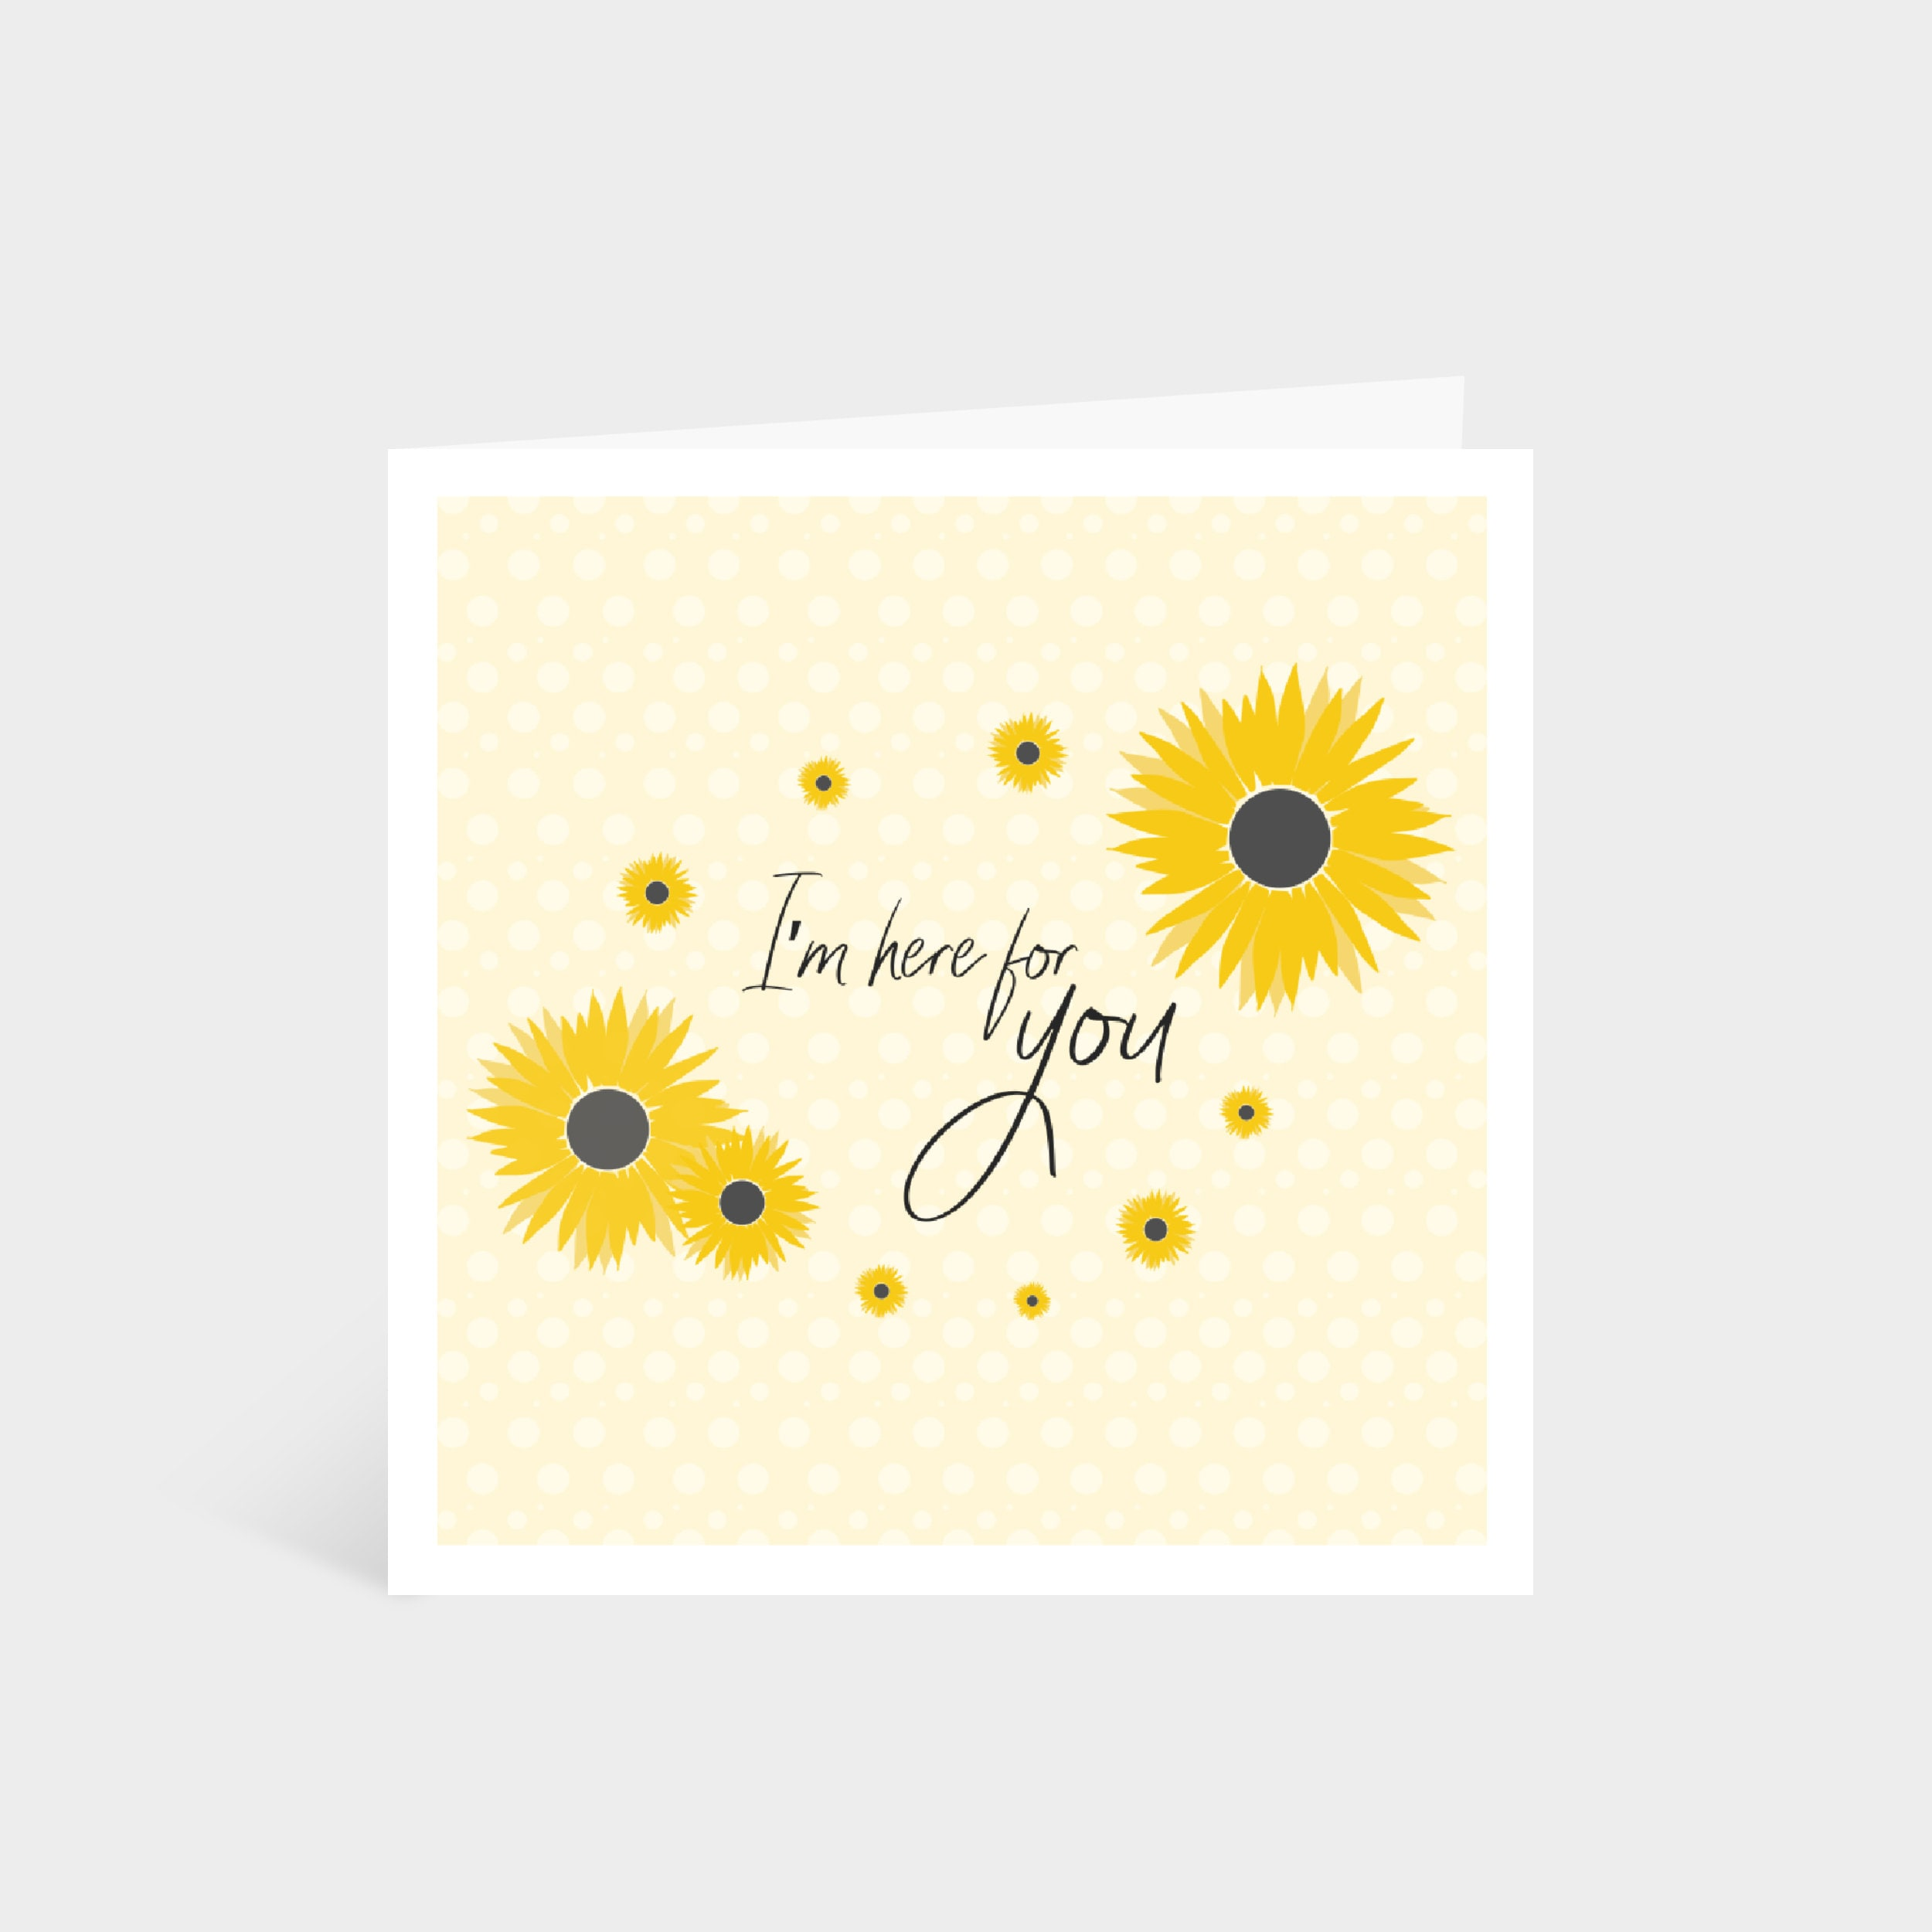 """Standing pale yellow square card with bright yellow illustrated sunflowers; says """"I'm here for you"""" in calligraphy font in the middle"""